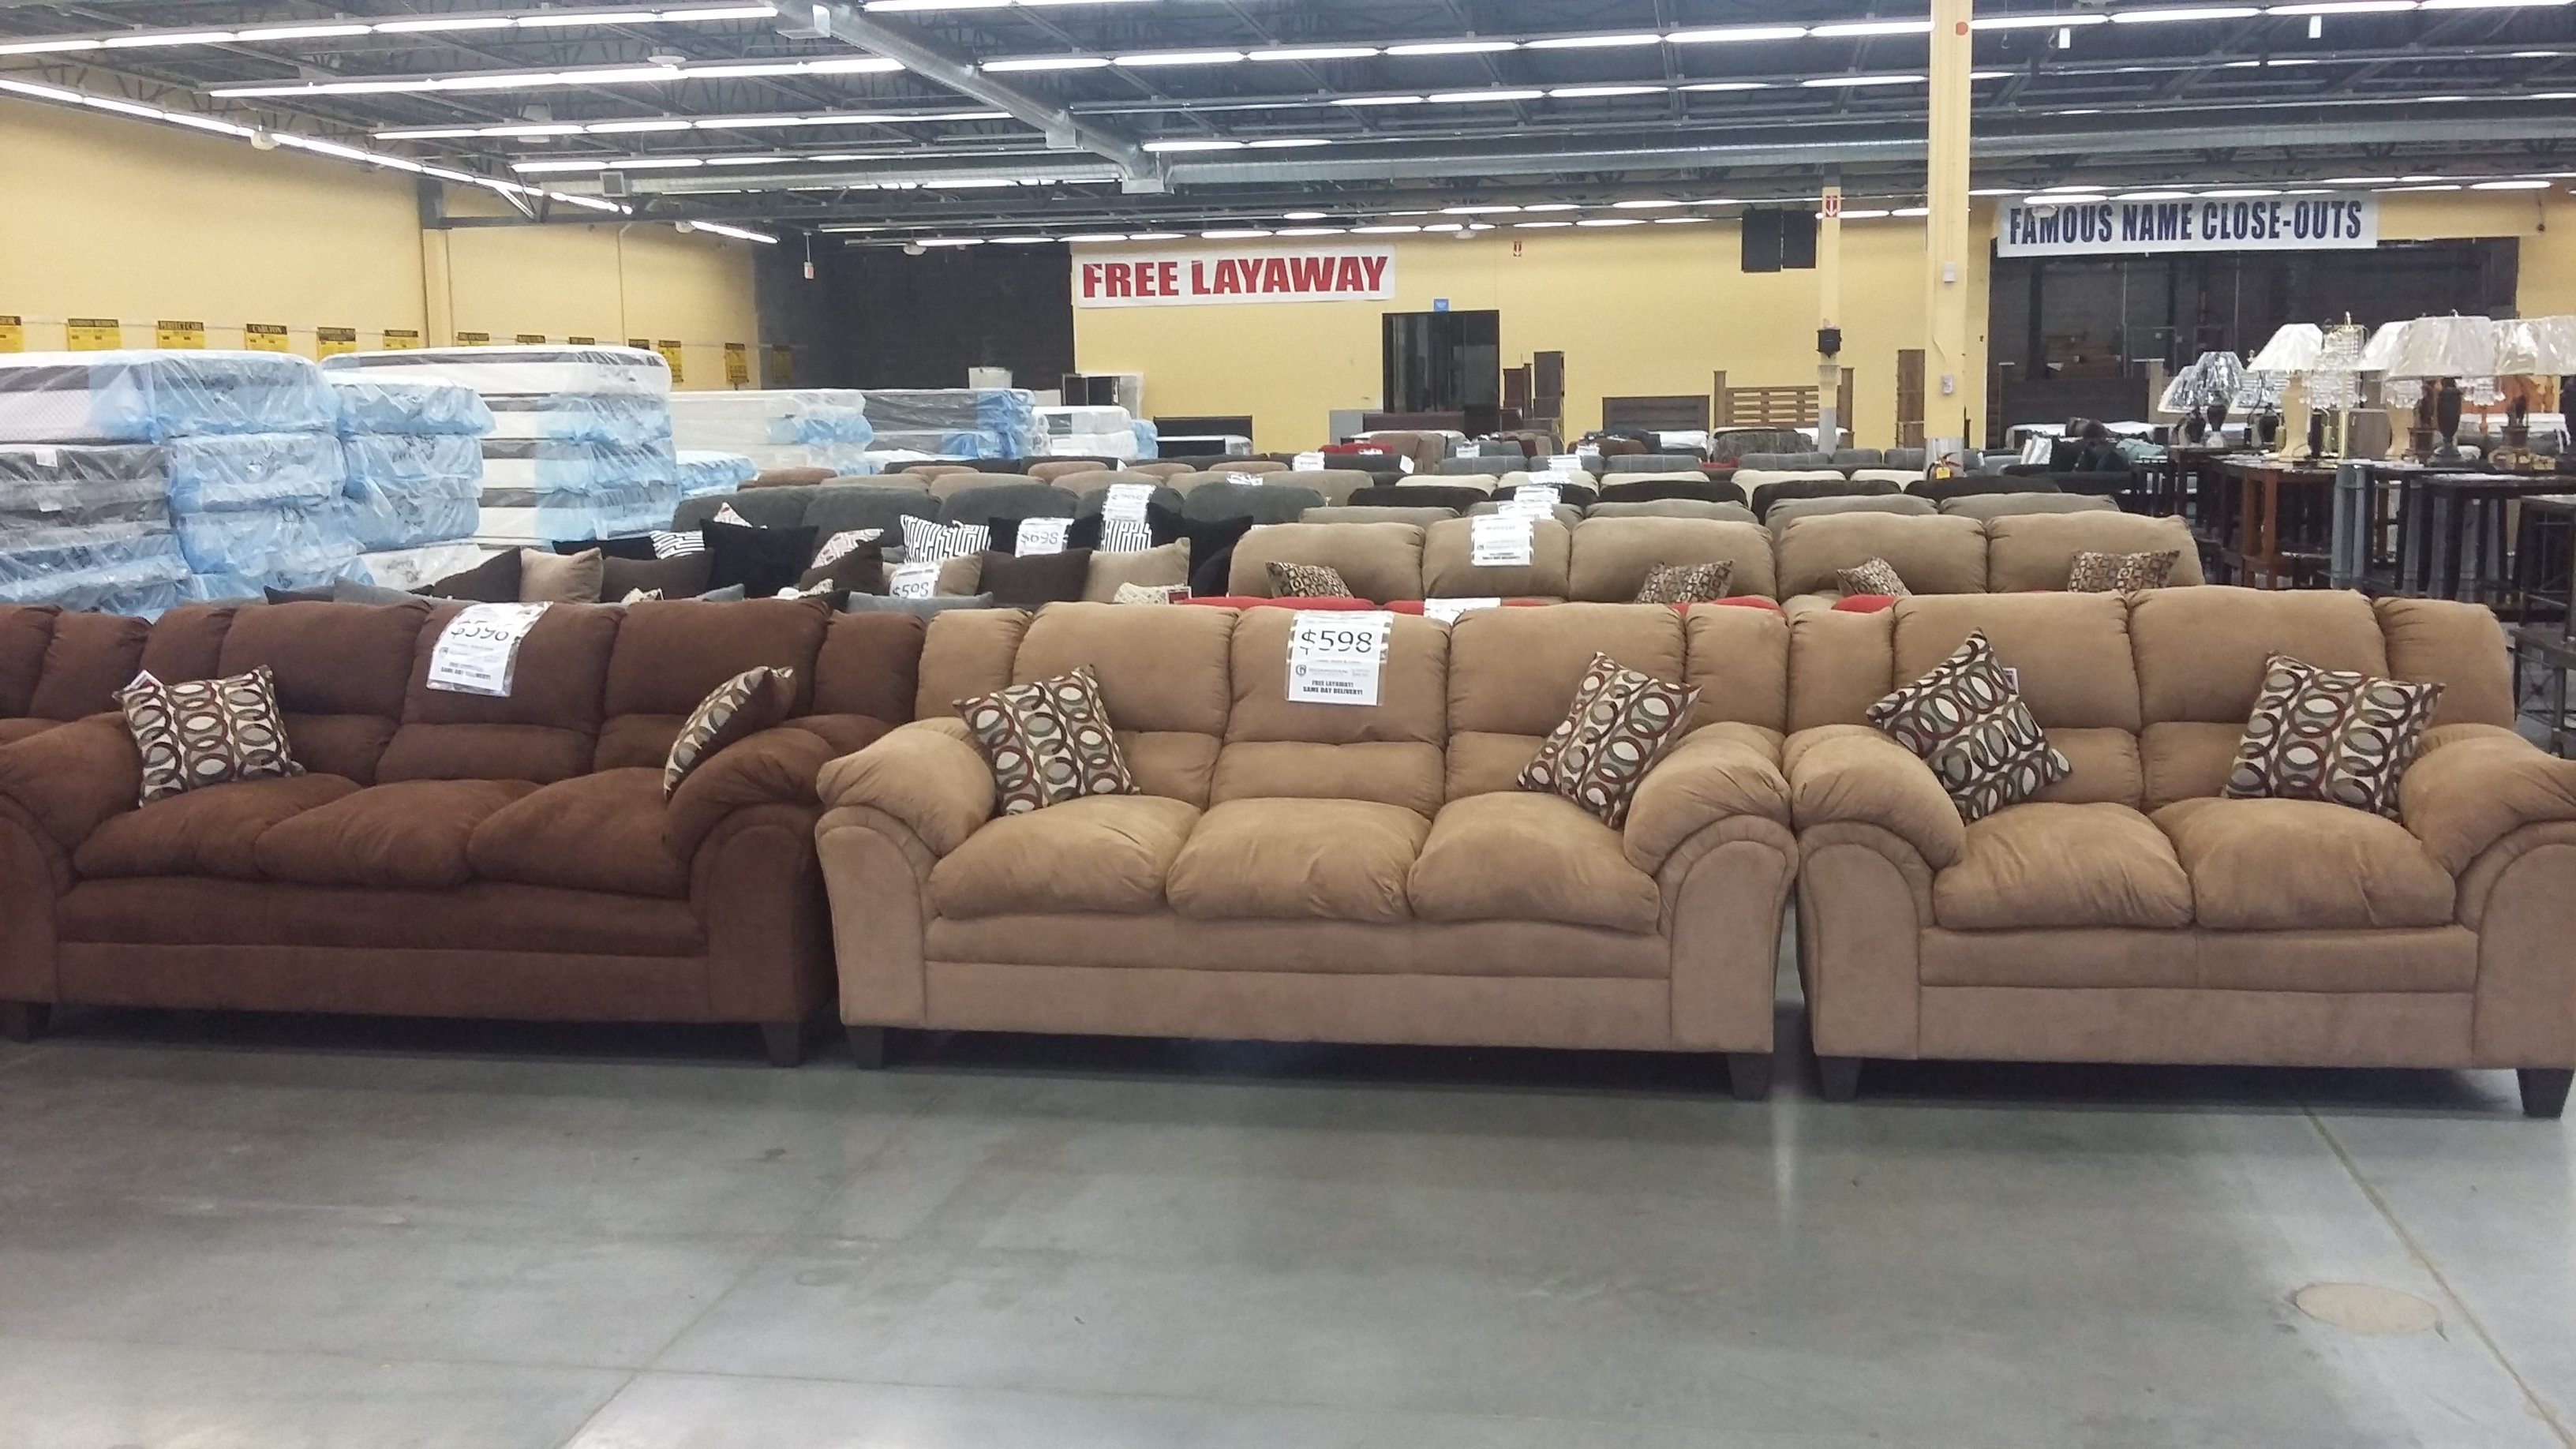 Furniture stores in wichita ks cheap furniture stores wichita ks reception furniture less Home bar furniture wichita ks